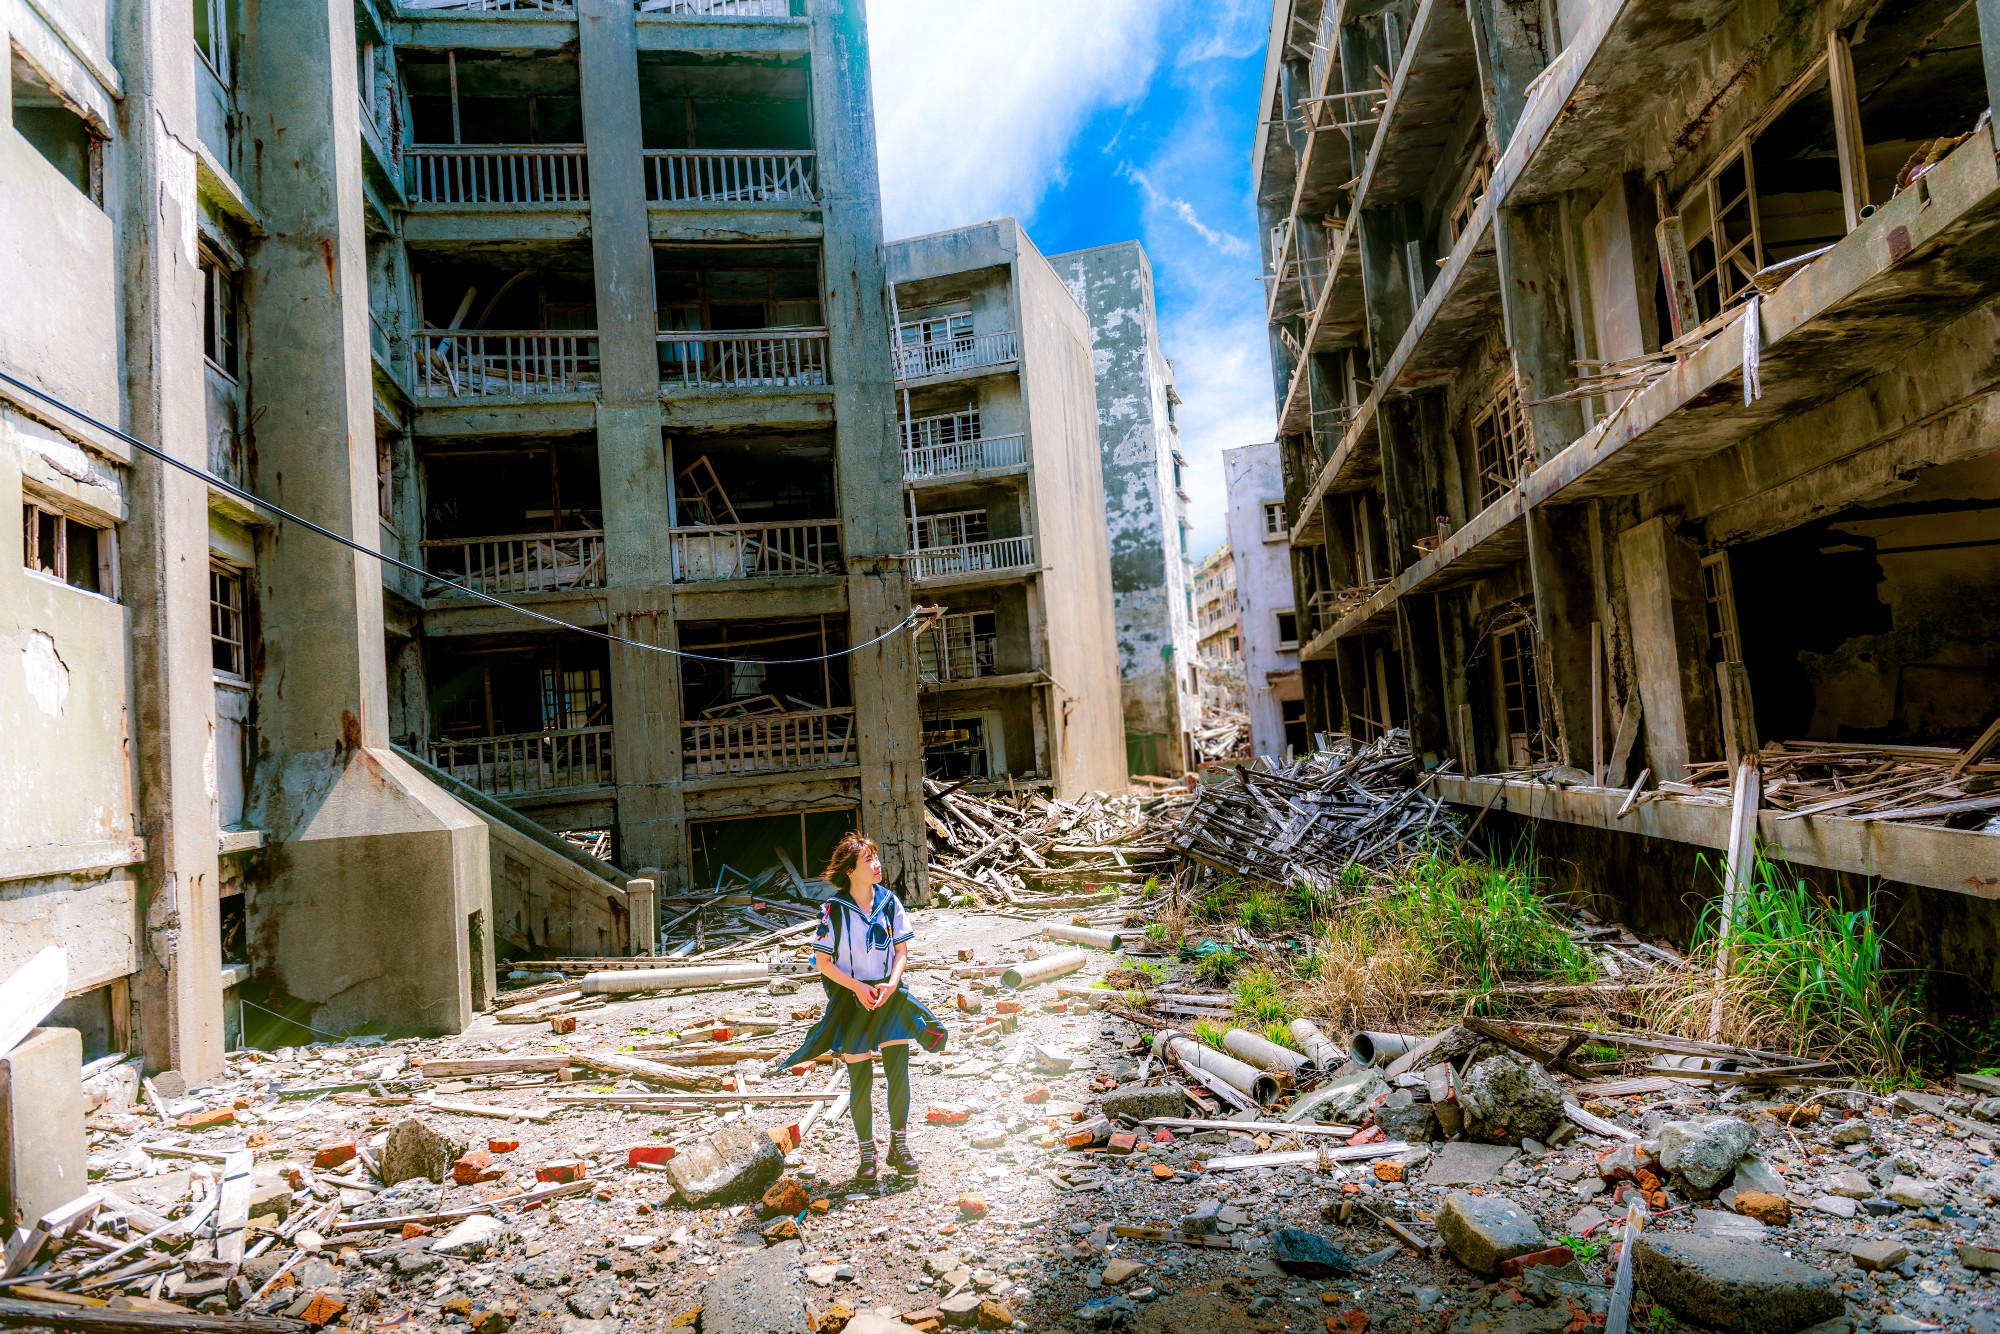 A woman standing in the middle of rubble from destroyed buildings